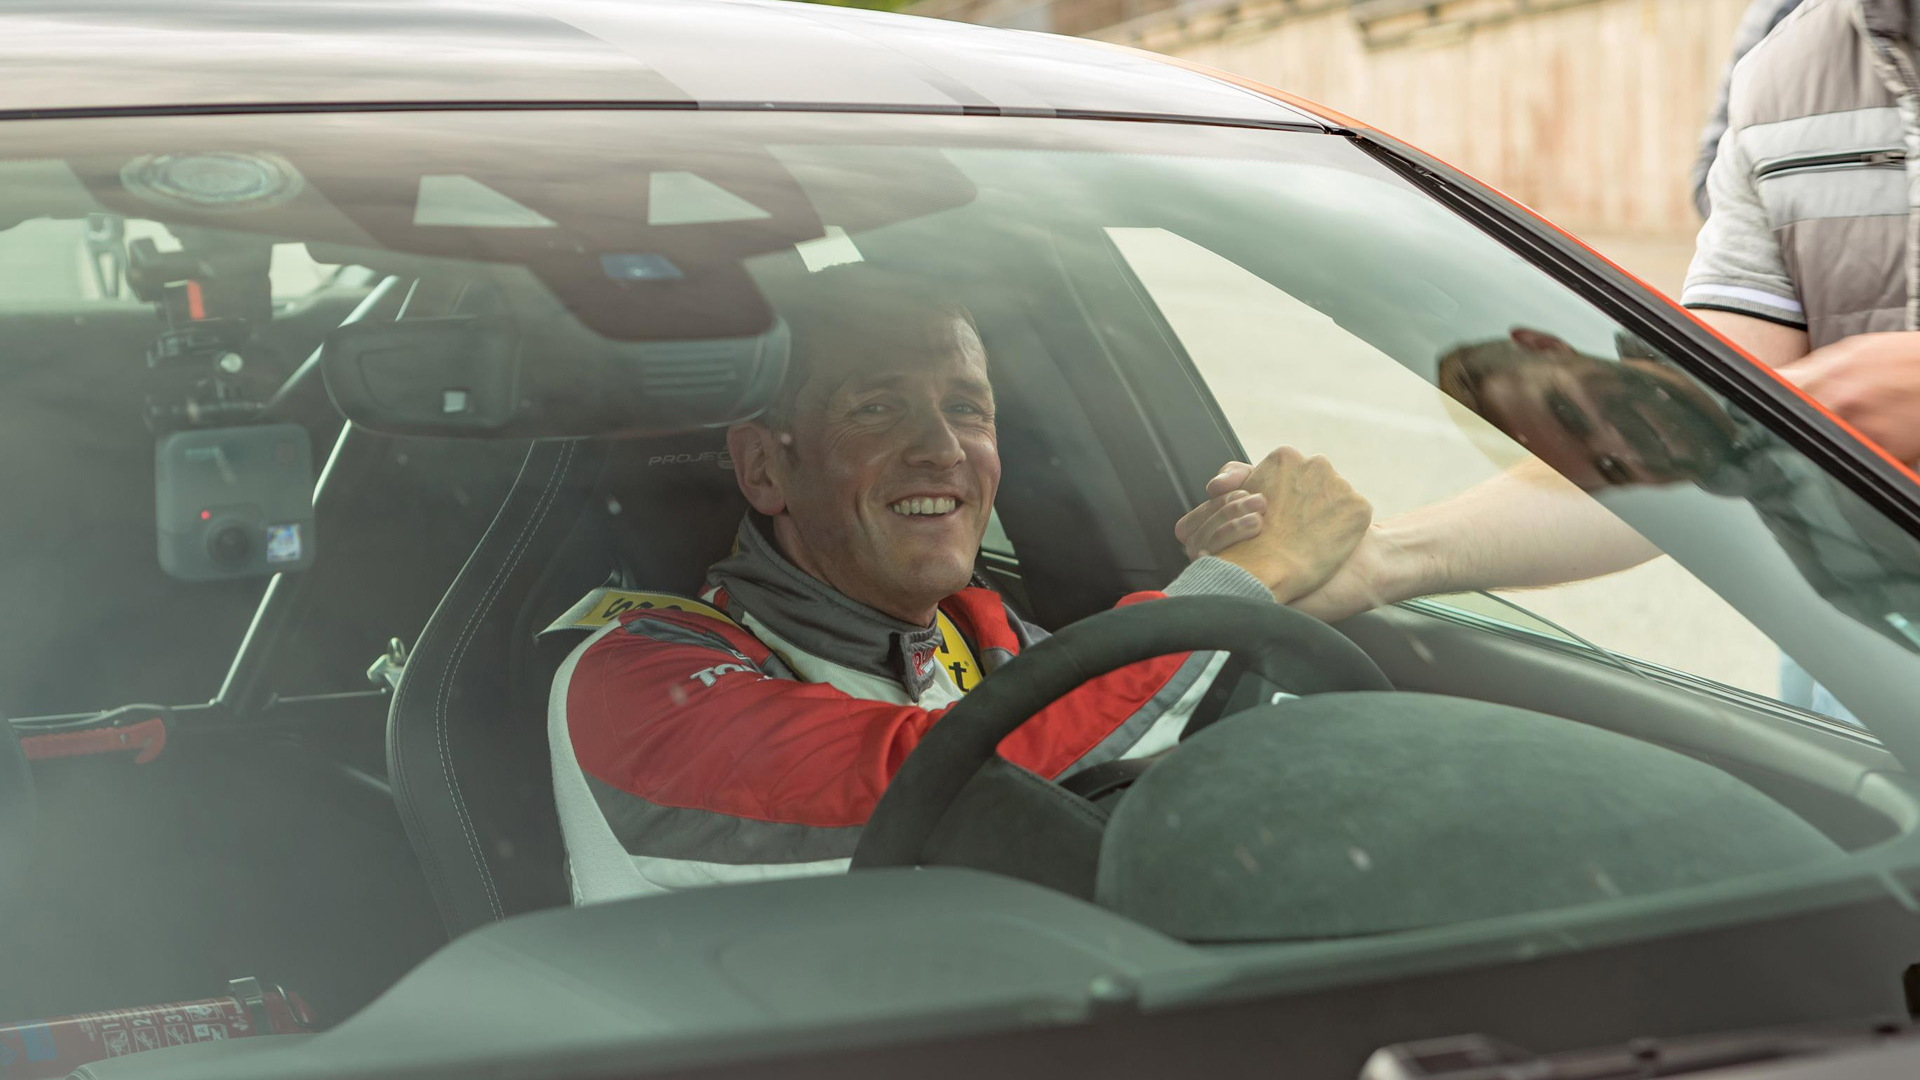 Vincent Radermecker after setting a 7:18.361 Nürburgring lap time with the Jaguar XE SV Project 8